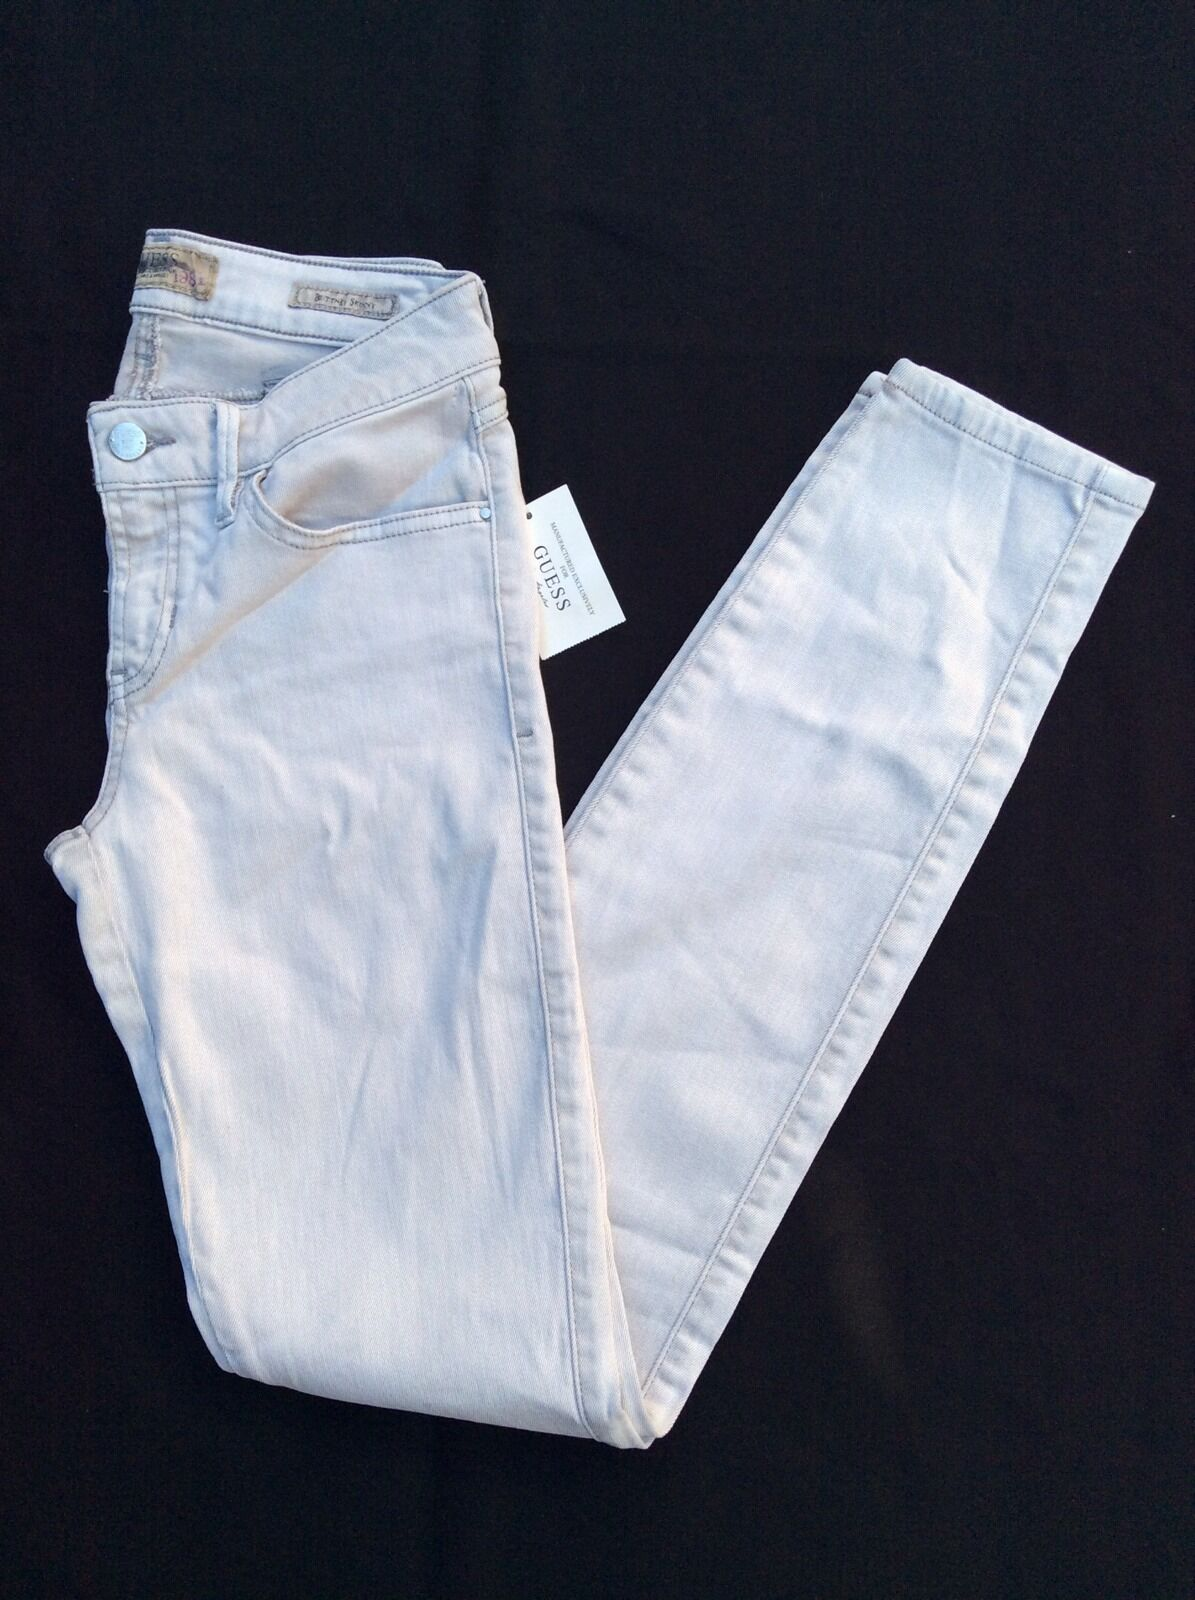 Guess Jeans Brittney Skinny Taupe Wash Size 27